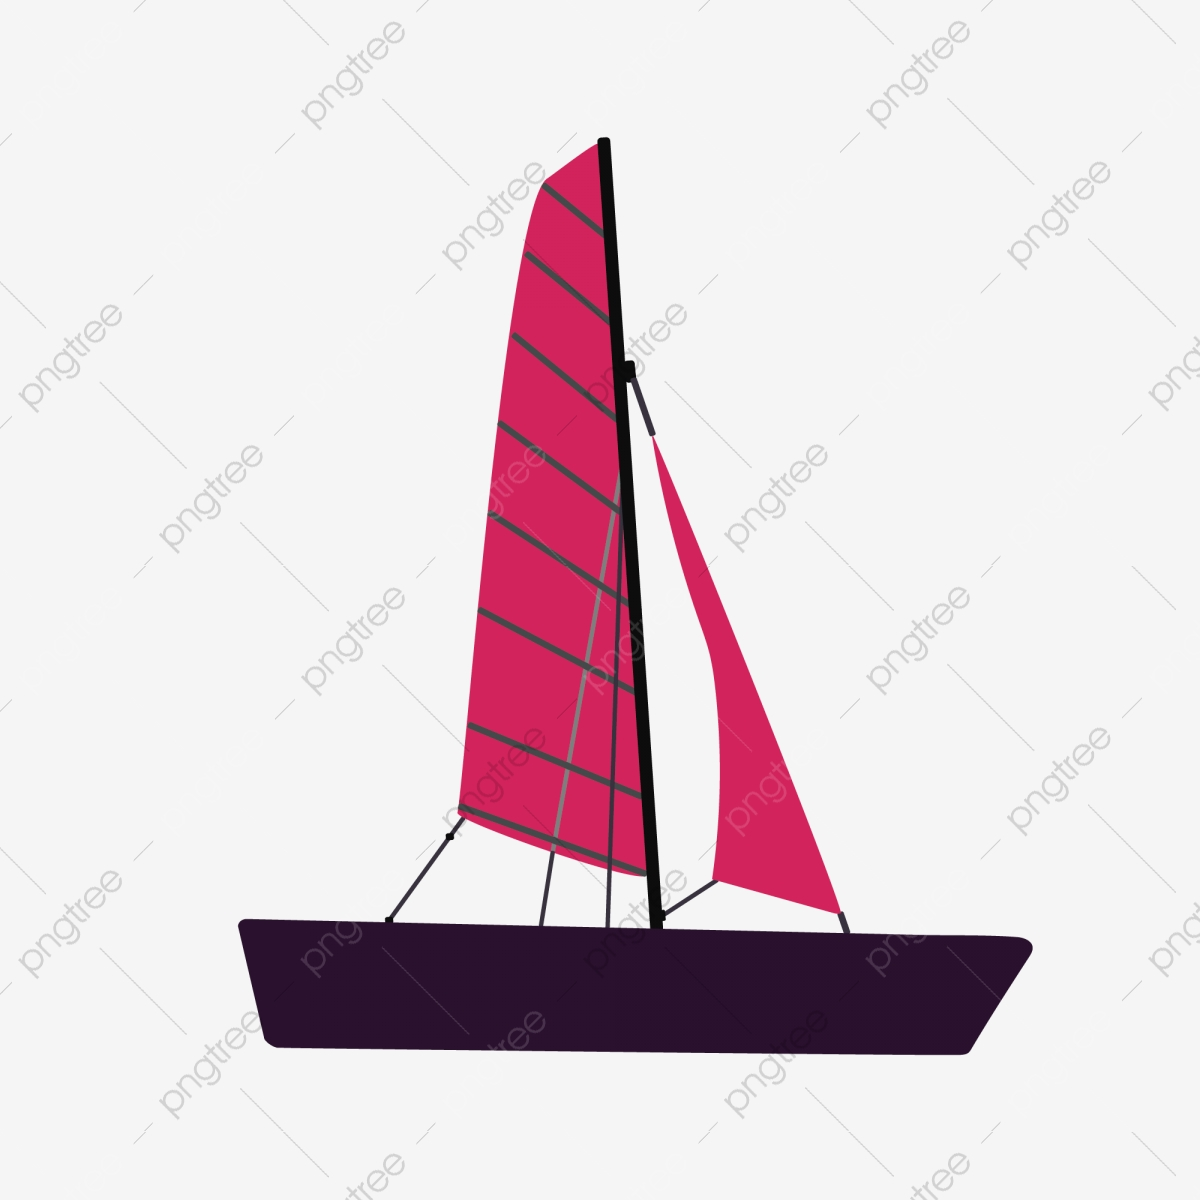 Wooden Sailing Tools Yang Fan Sailing Boat Fishing Boat Png And Vector With Transparent Background For Free Download